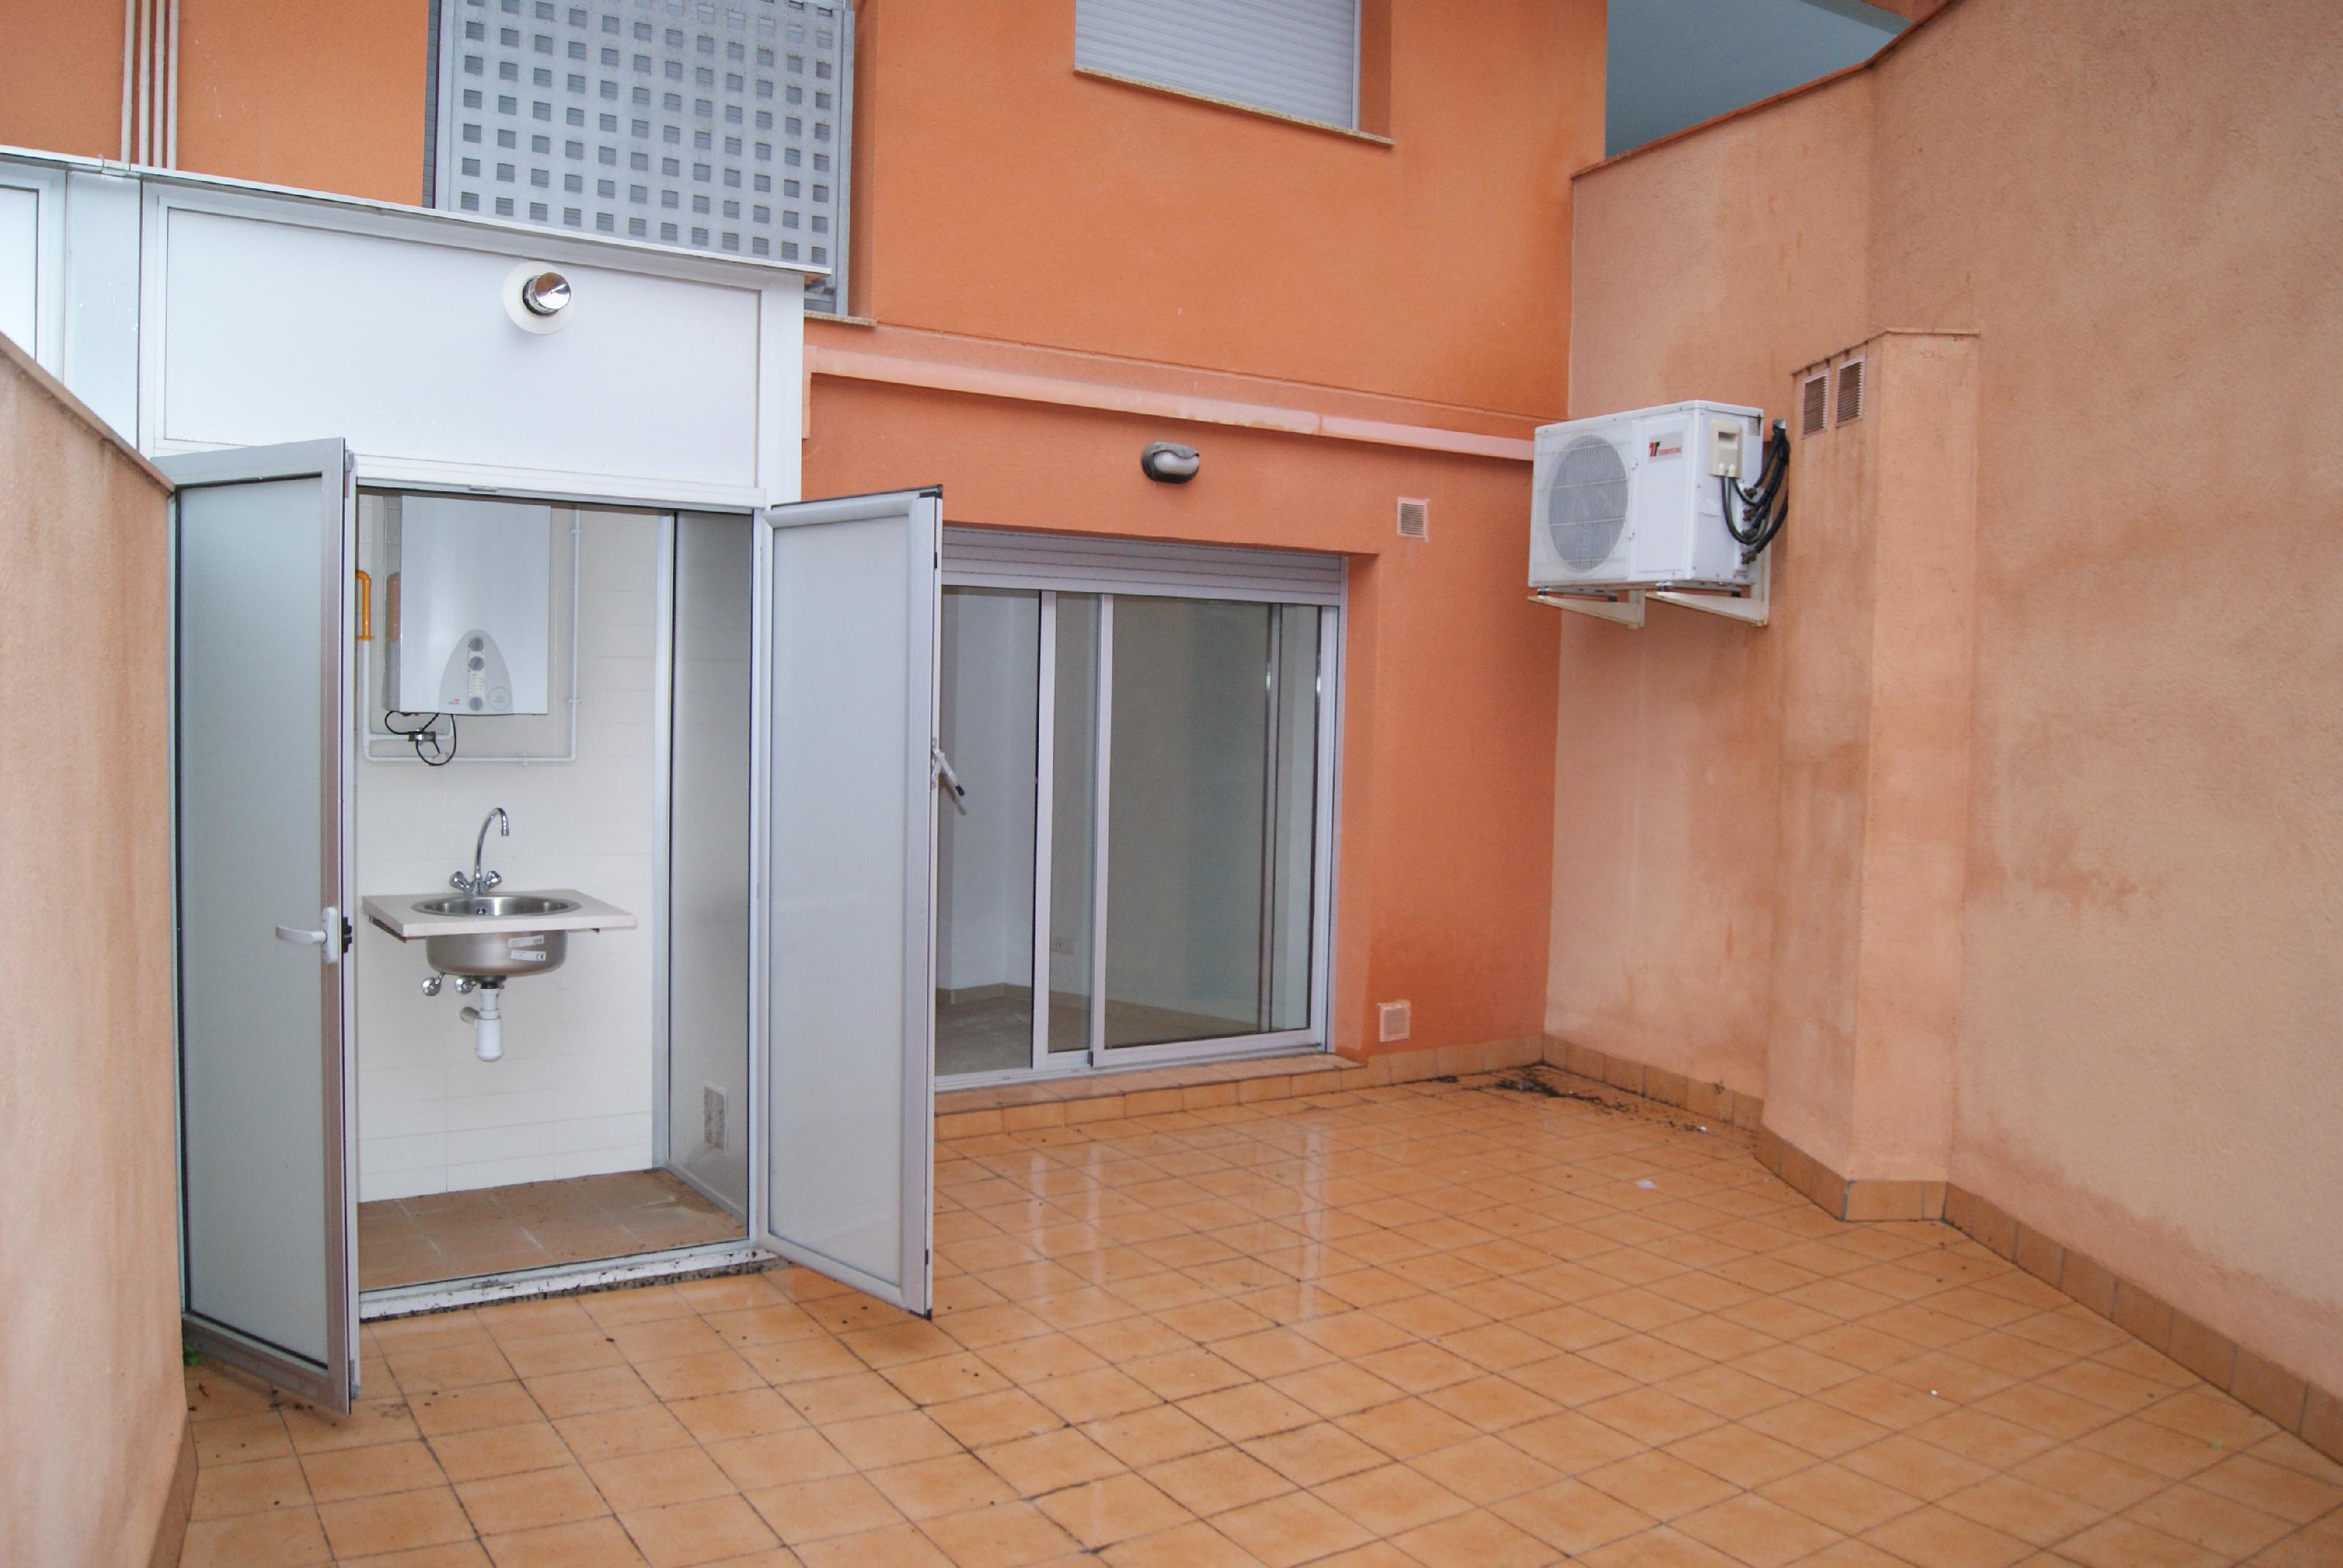 235220 Duplex for sale in Sants-Montjuïc, La Marina de Port 4